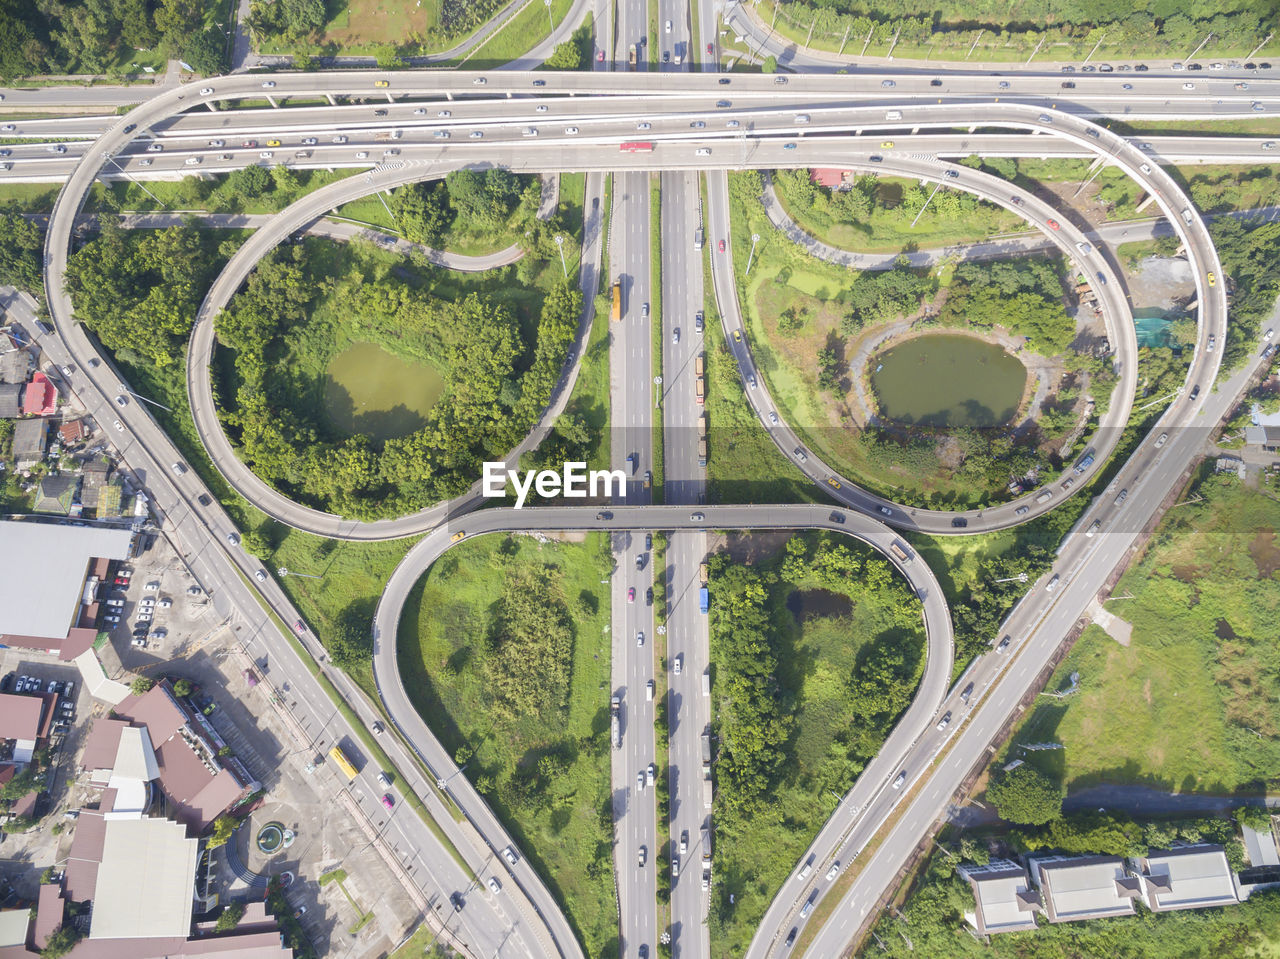 road, transportation, city, aerial view, high angle view, no people, built structure, day, architecture, plant, street, land vehicle, highway, mode of transportation, nature, multiple lane highway, green color, connection, elevated road, outdoors, overpass, complexity